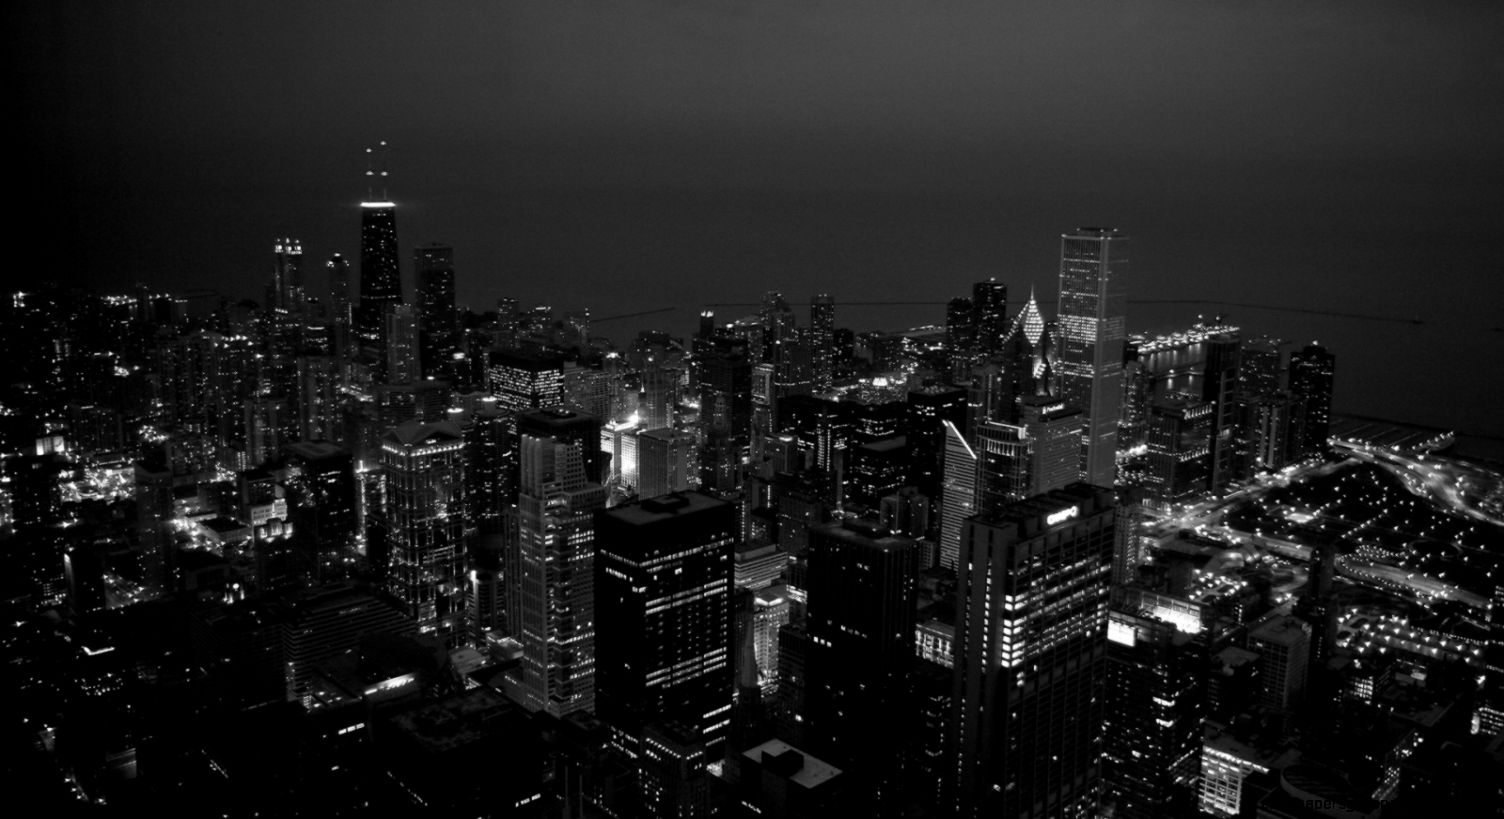 28 Dark City Images and Wallpapers for Mac PC   Wallpapers